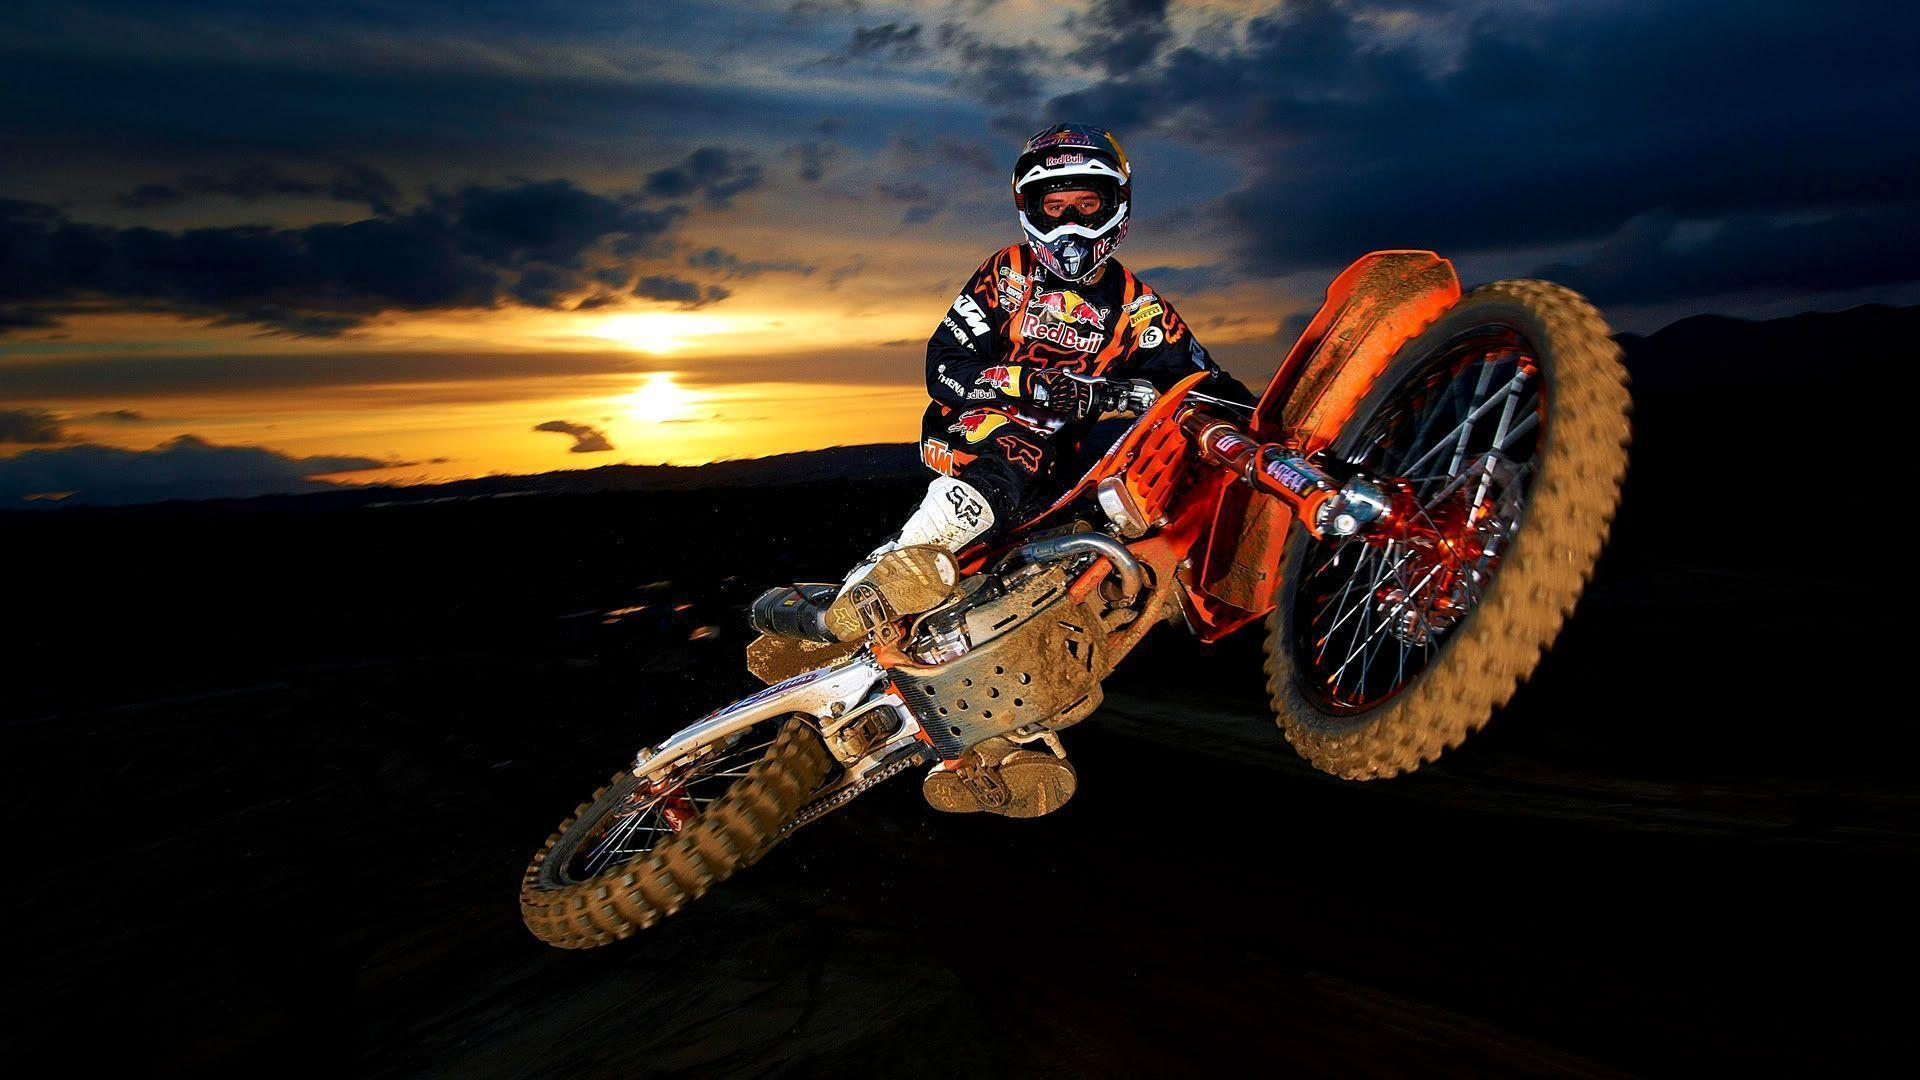 Wallpapers Motocross KTM 1920x1080